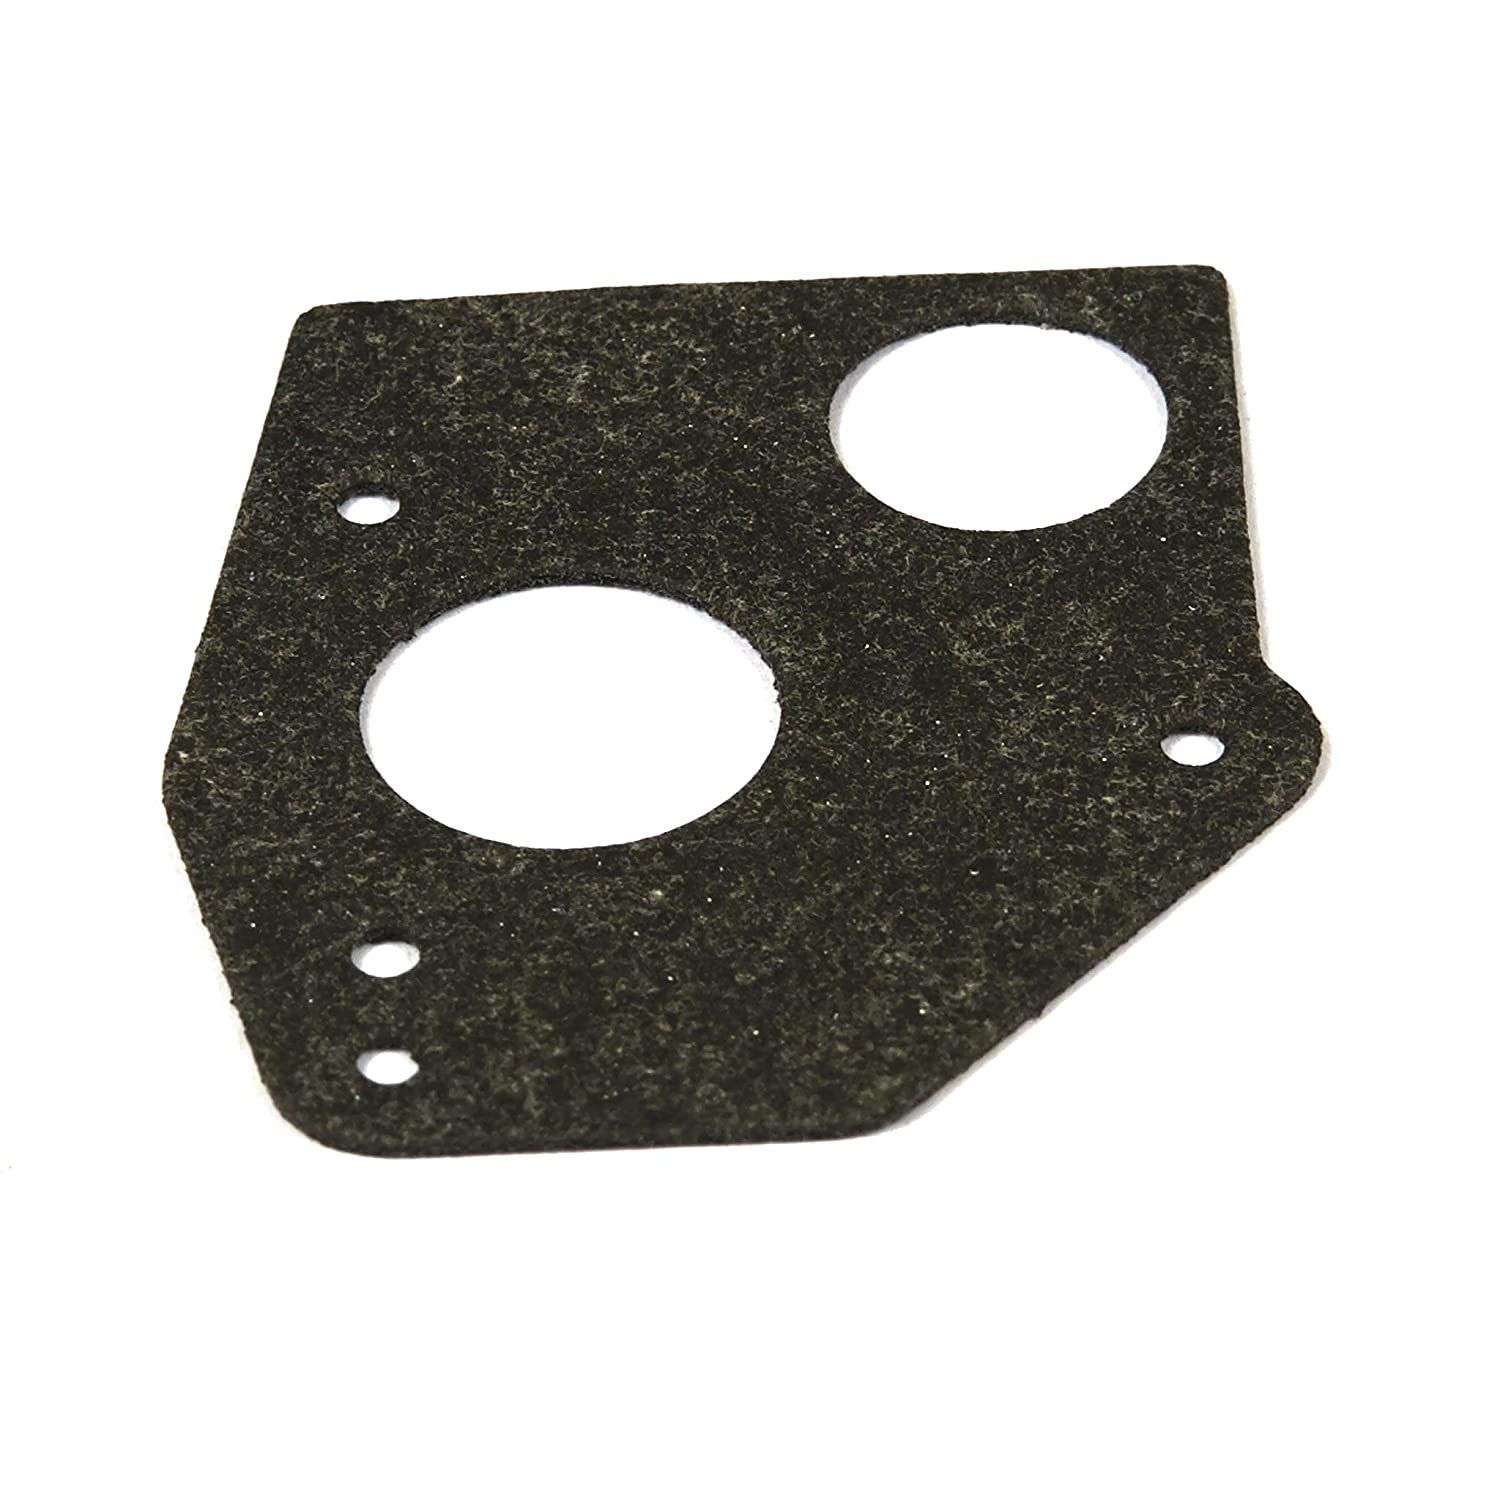 BRIGGS AND STRATTON 272409S GASKET-FUEL TANK Briggs & Stratton